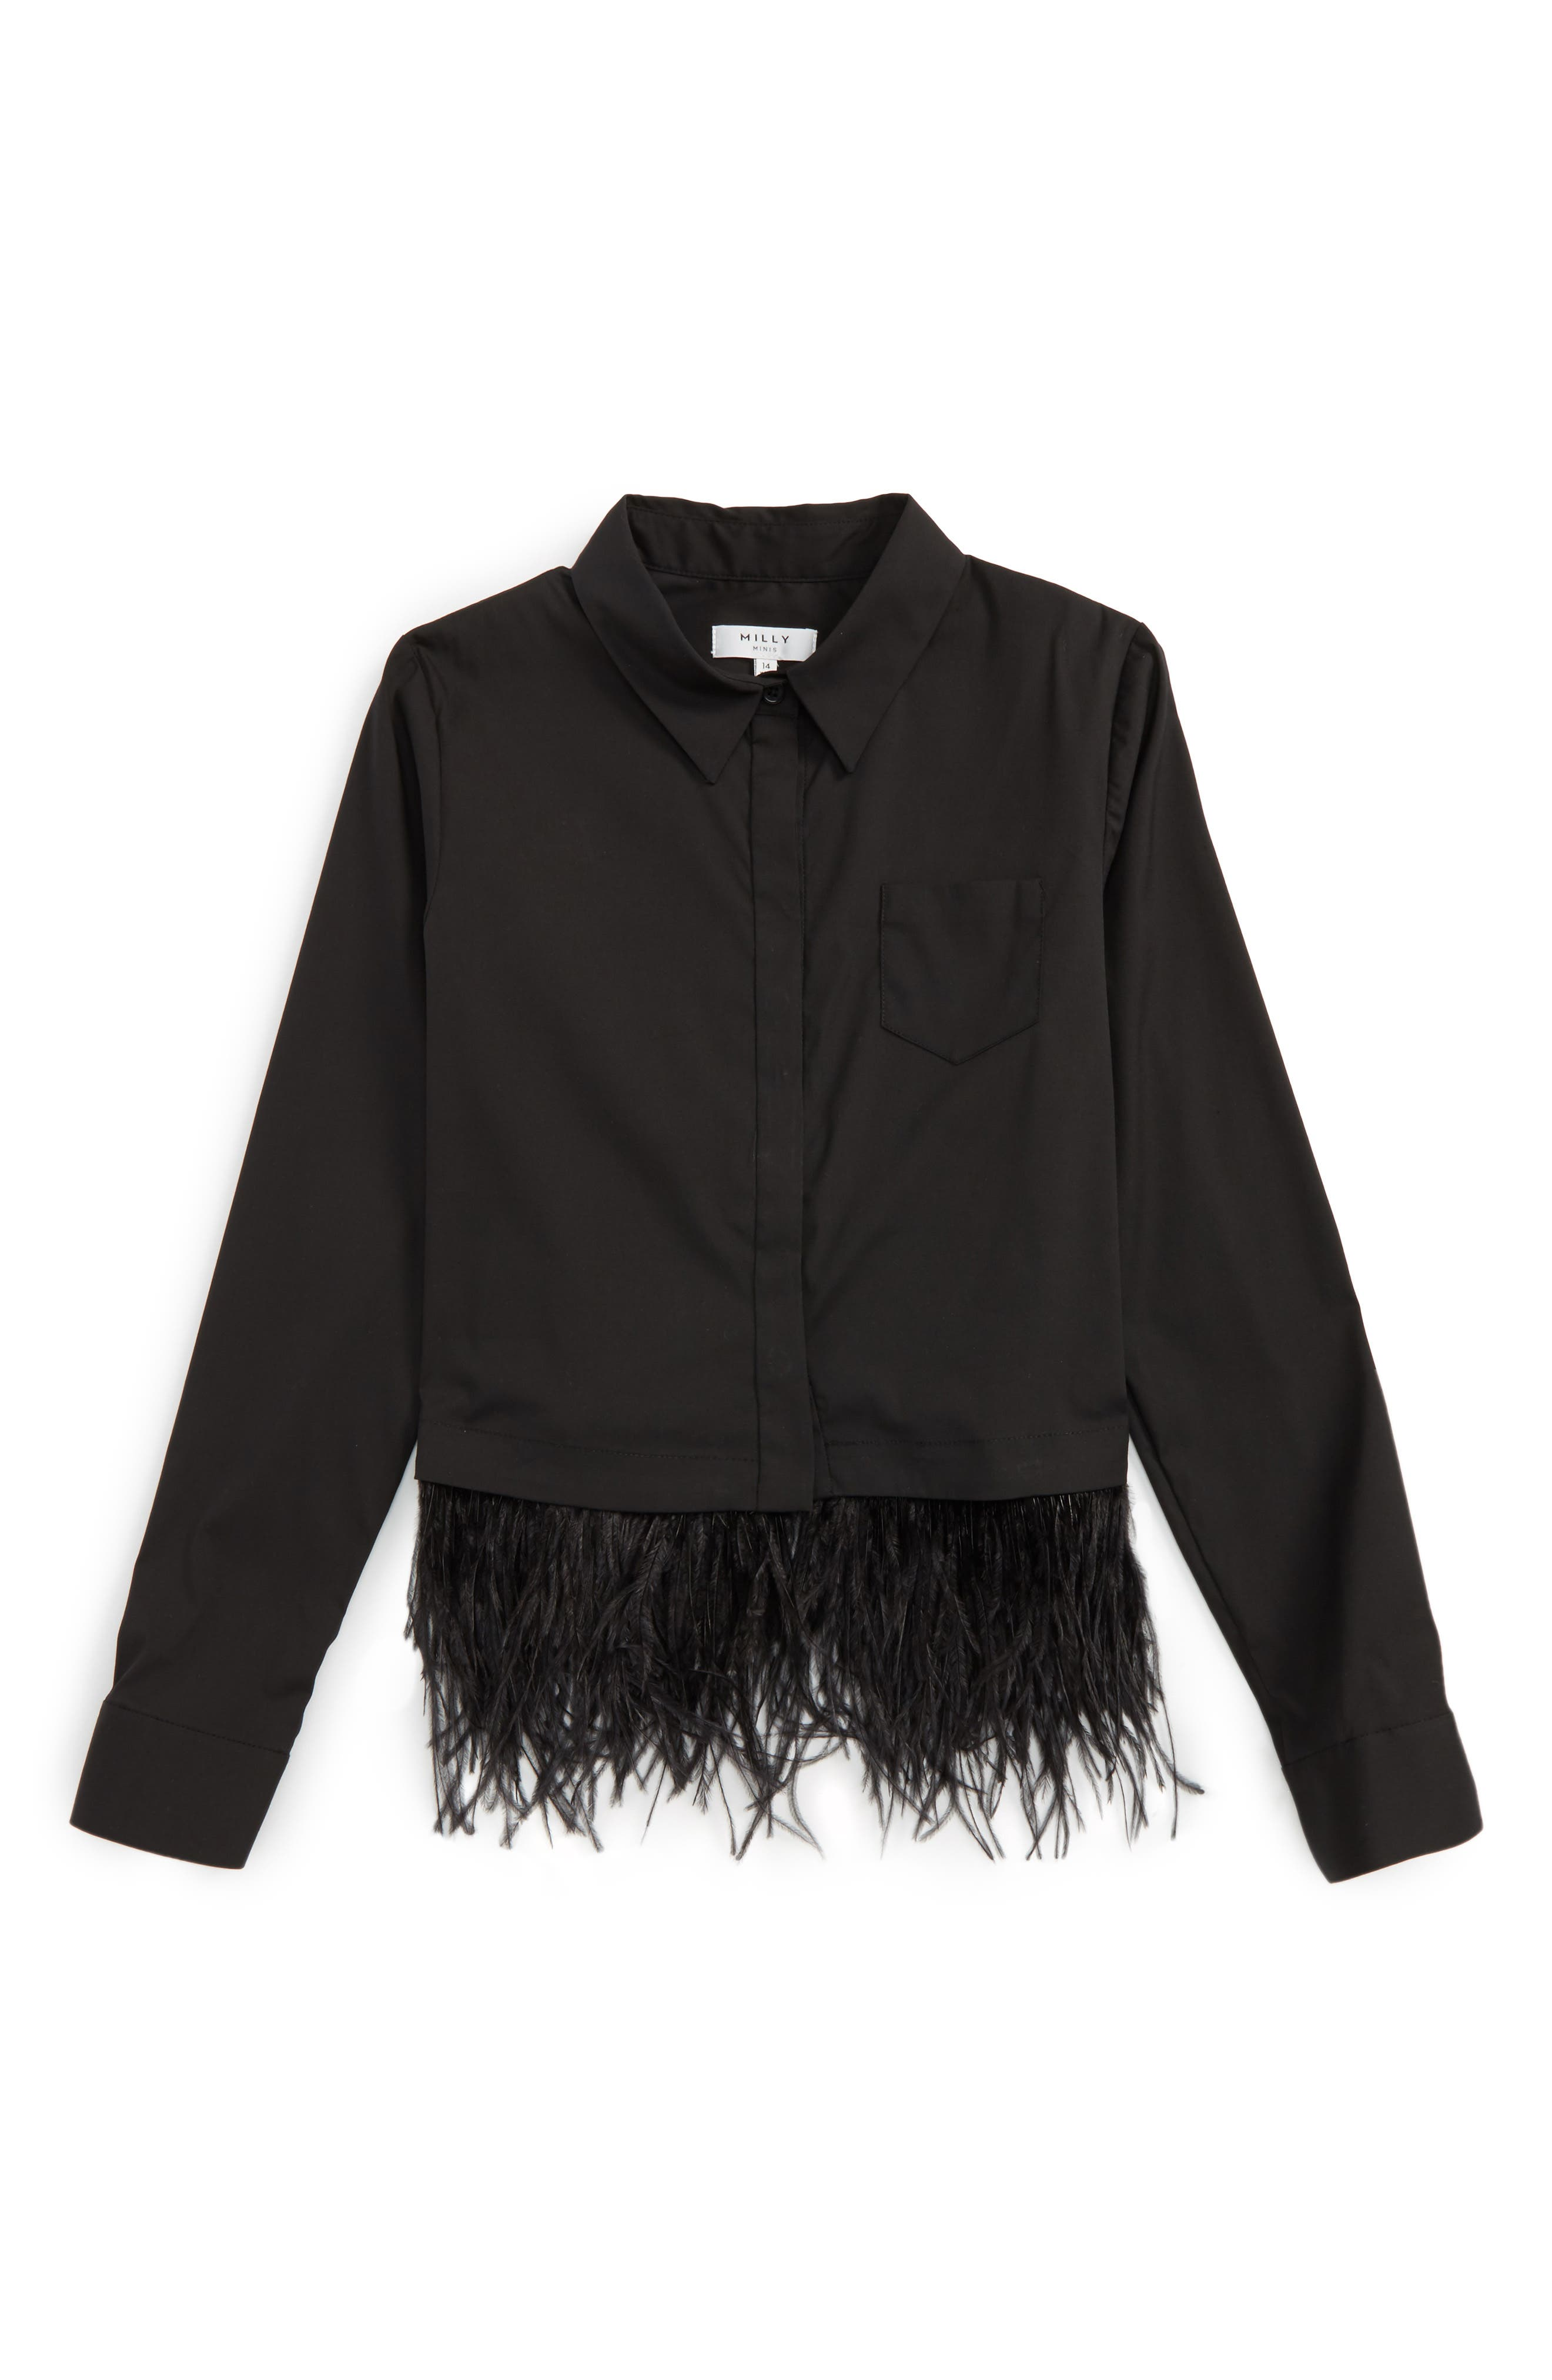 Alternate Image 1 Selected - Milly Minis Feather Trim Shirt (Big Girls)